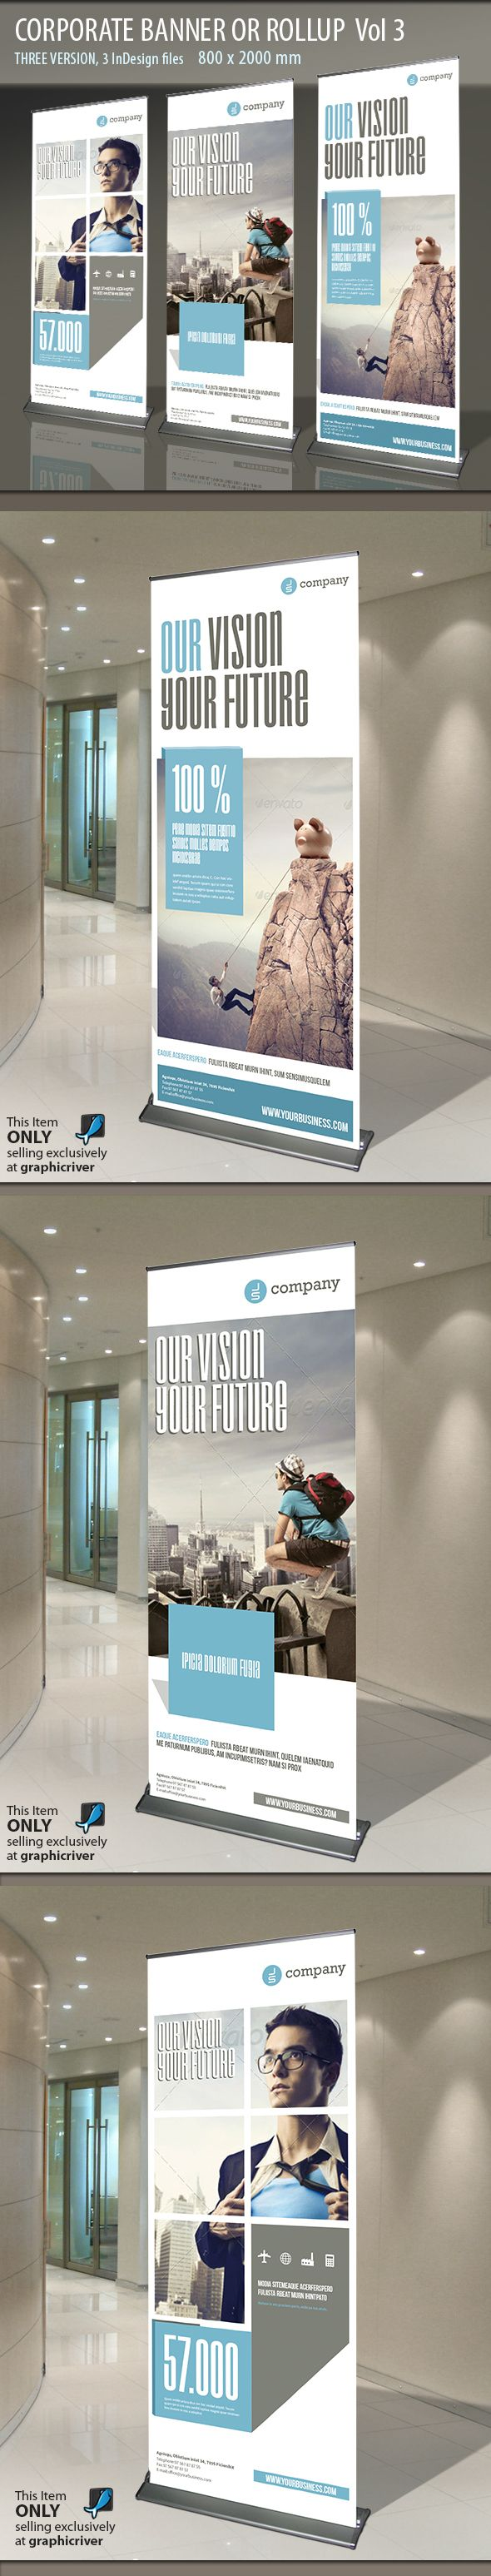 Flyer layout idea for yearbook   Corporate Banner or Rollup Vol 3 by Paulnomade Paulnomade, via Behance